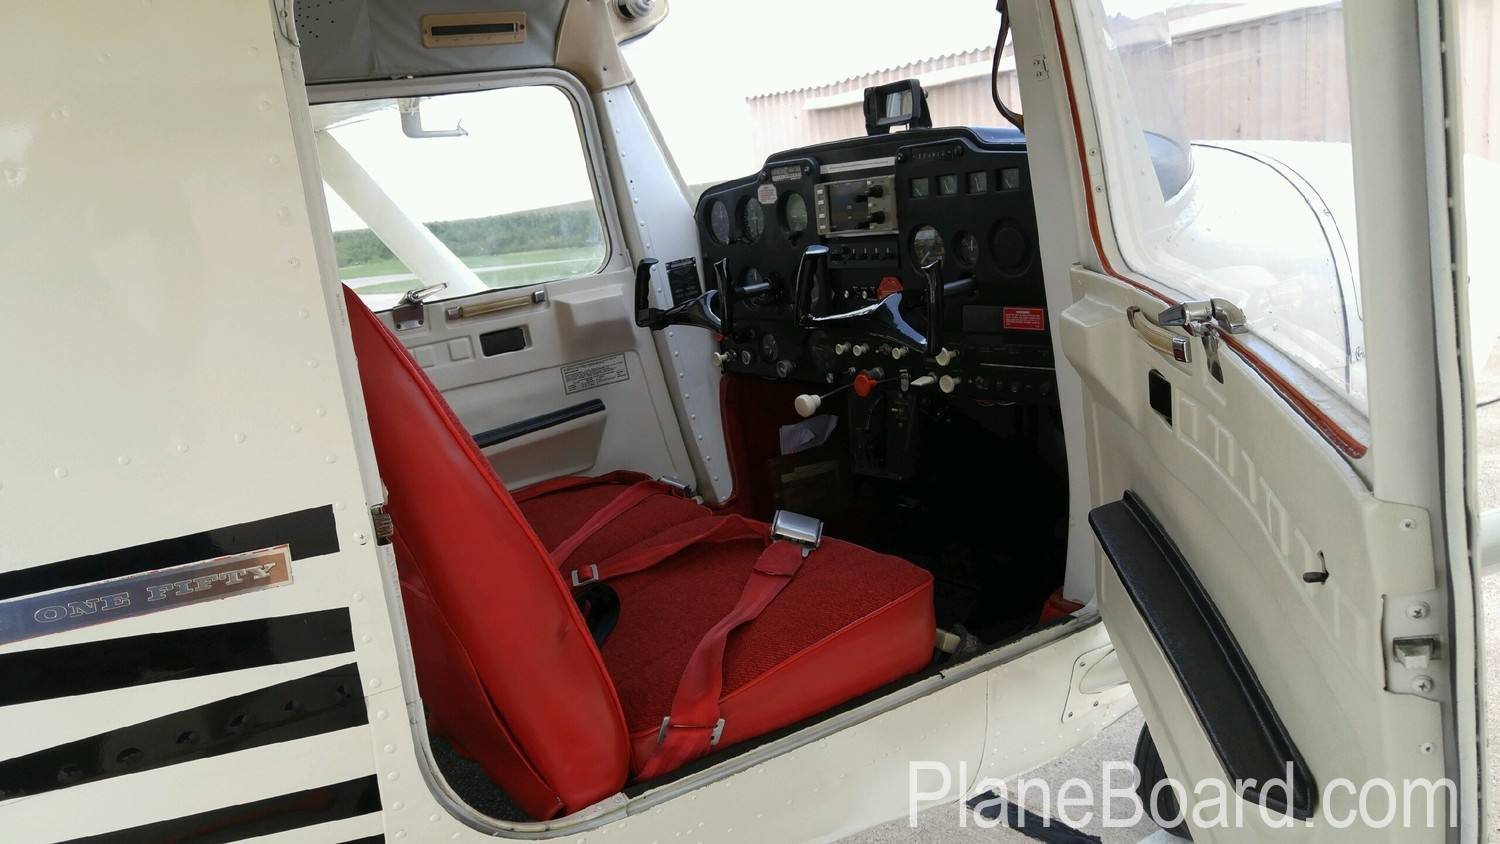 1967 cessna 150 for sale n3491j planeboard